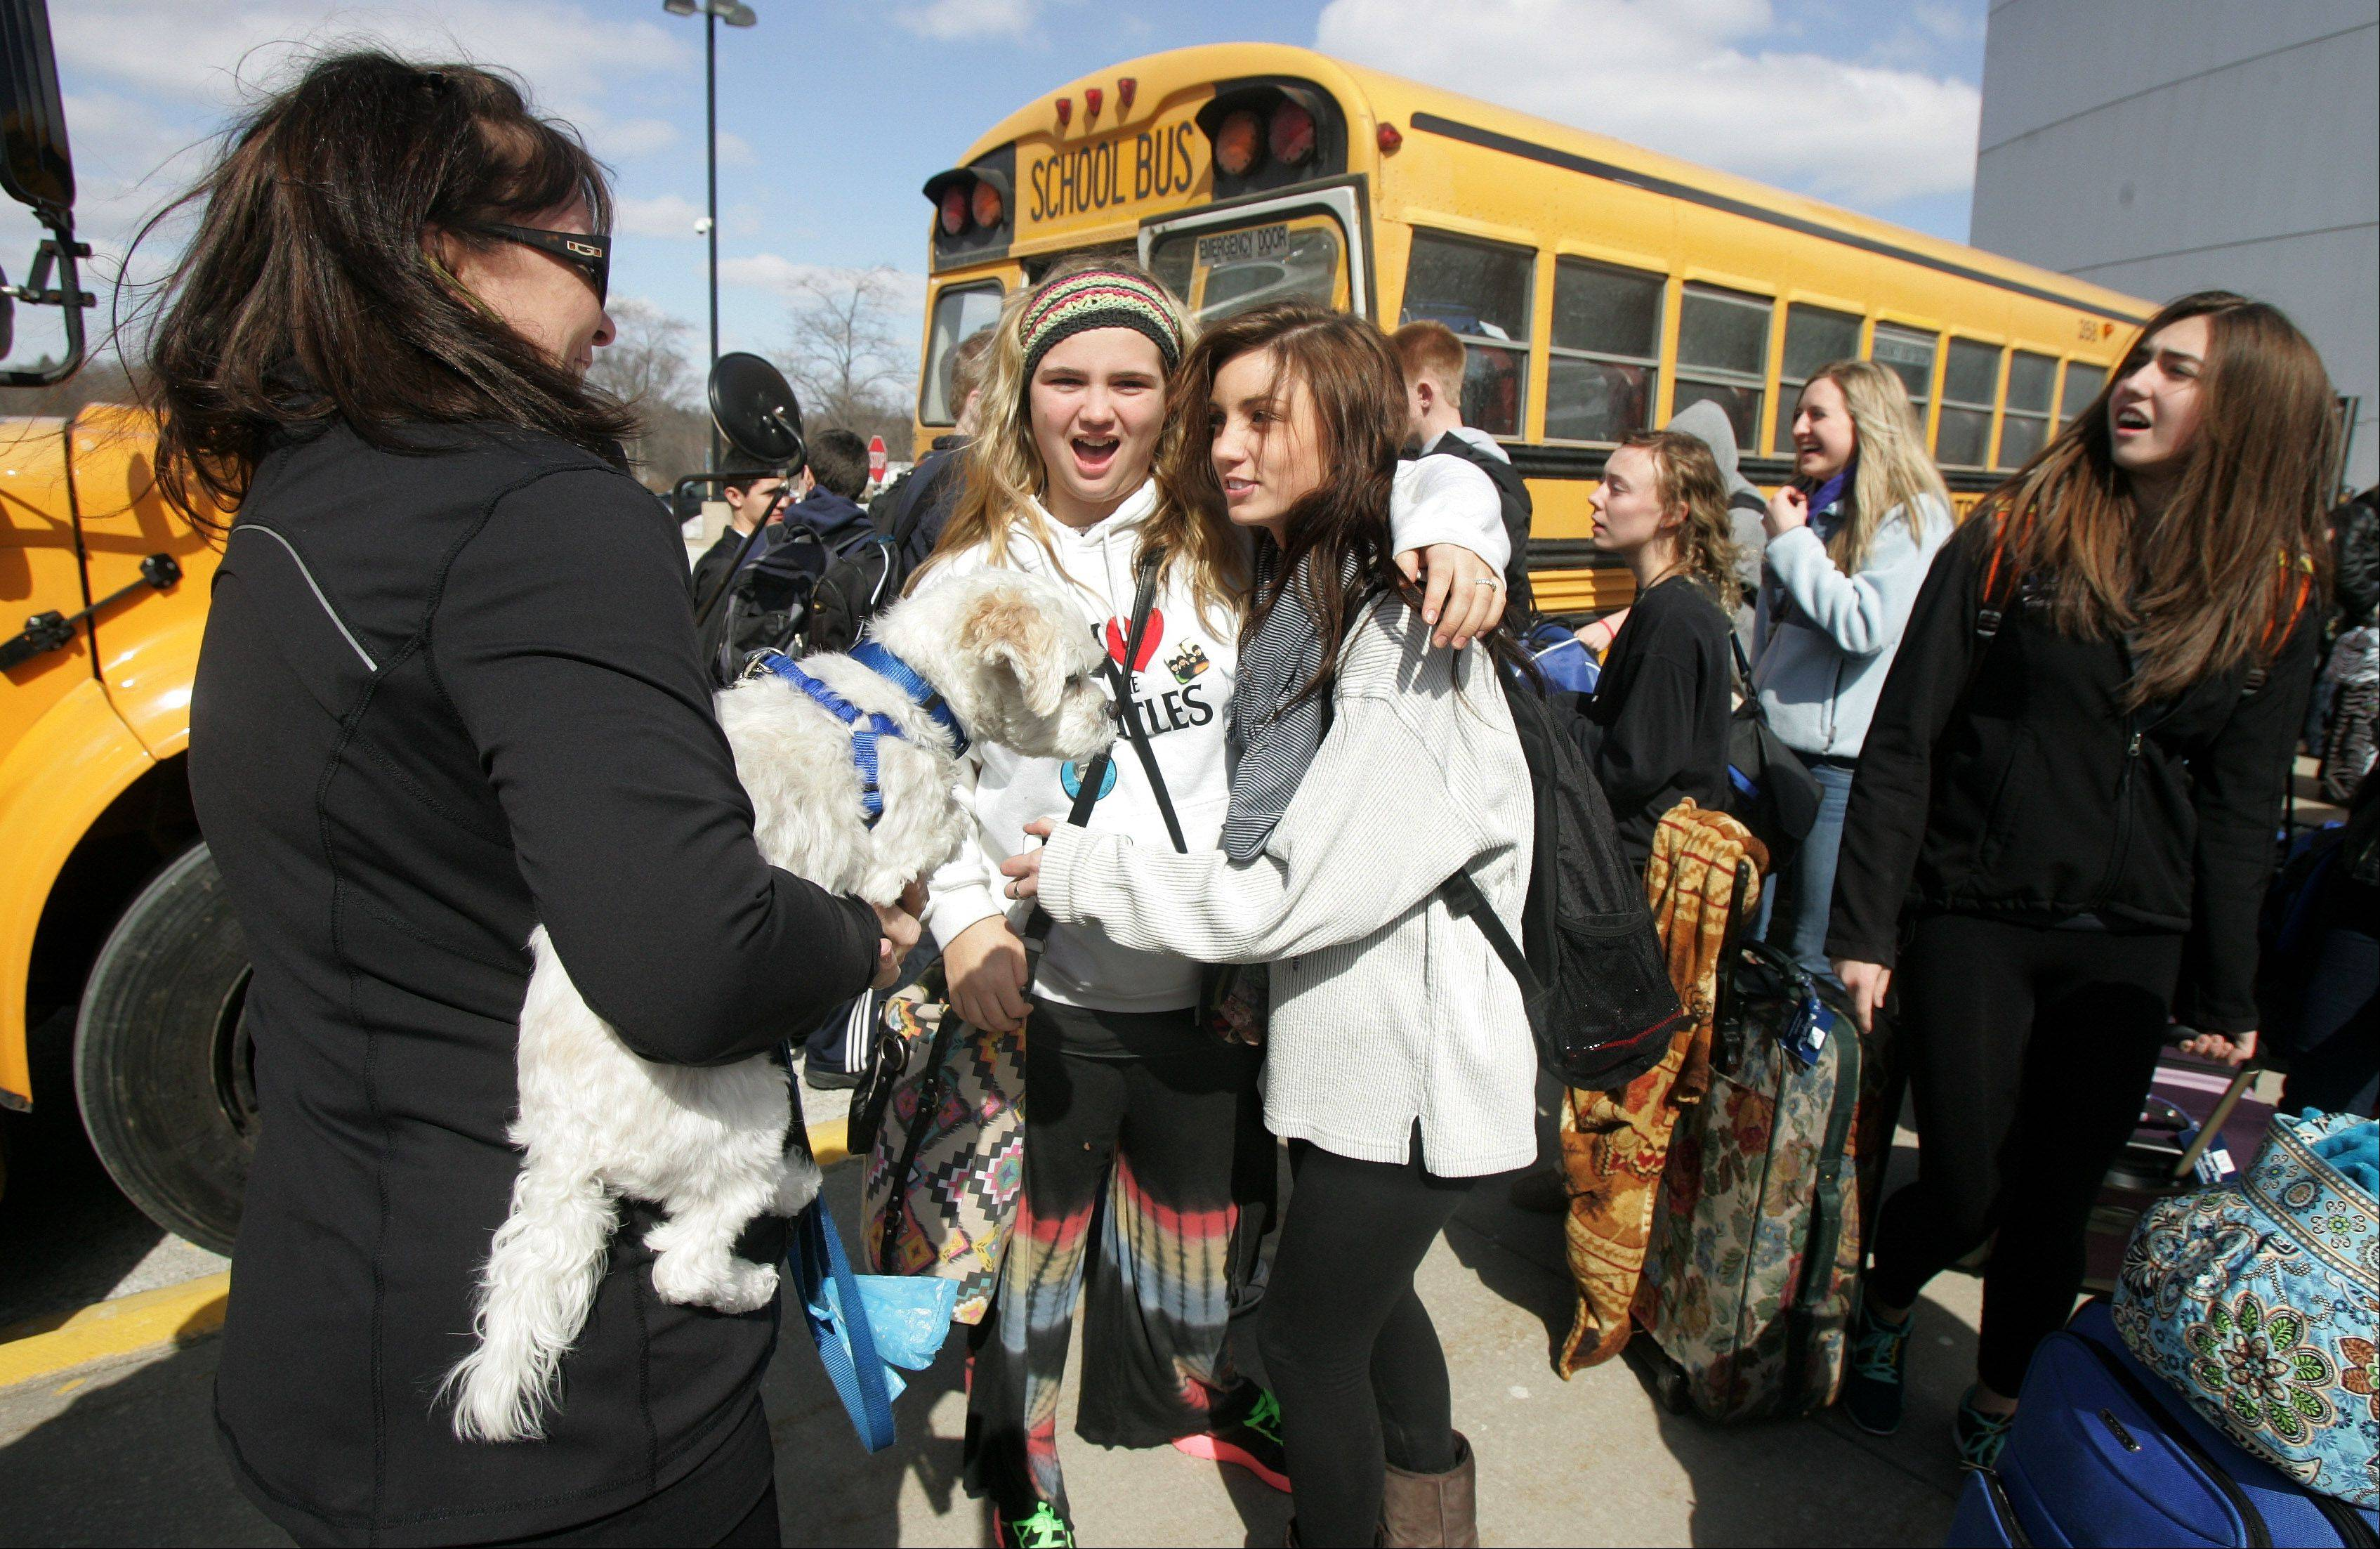 Jan Zobel, left, brings her dog, Max, to see Danielle Dicosola and her daughter, Riley, as Lake Zurich High School choir students leave Wednesday to travel to Italy. They'll perform during Mass at St. Peter's Basilica in Vatican City.